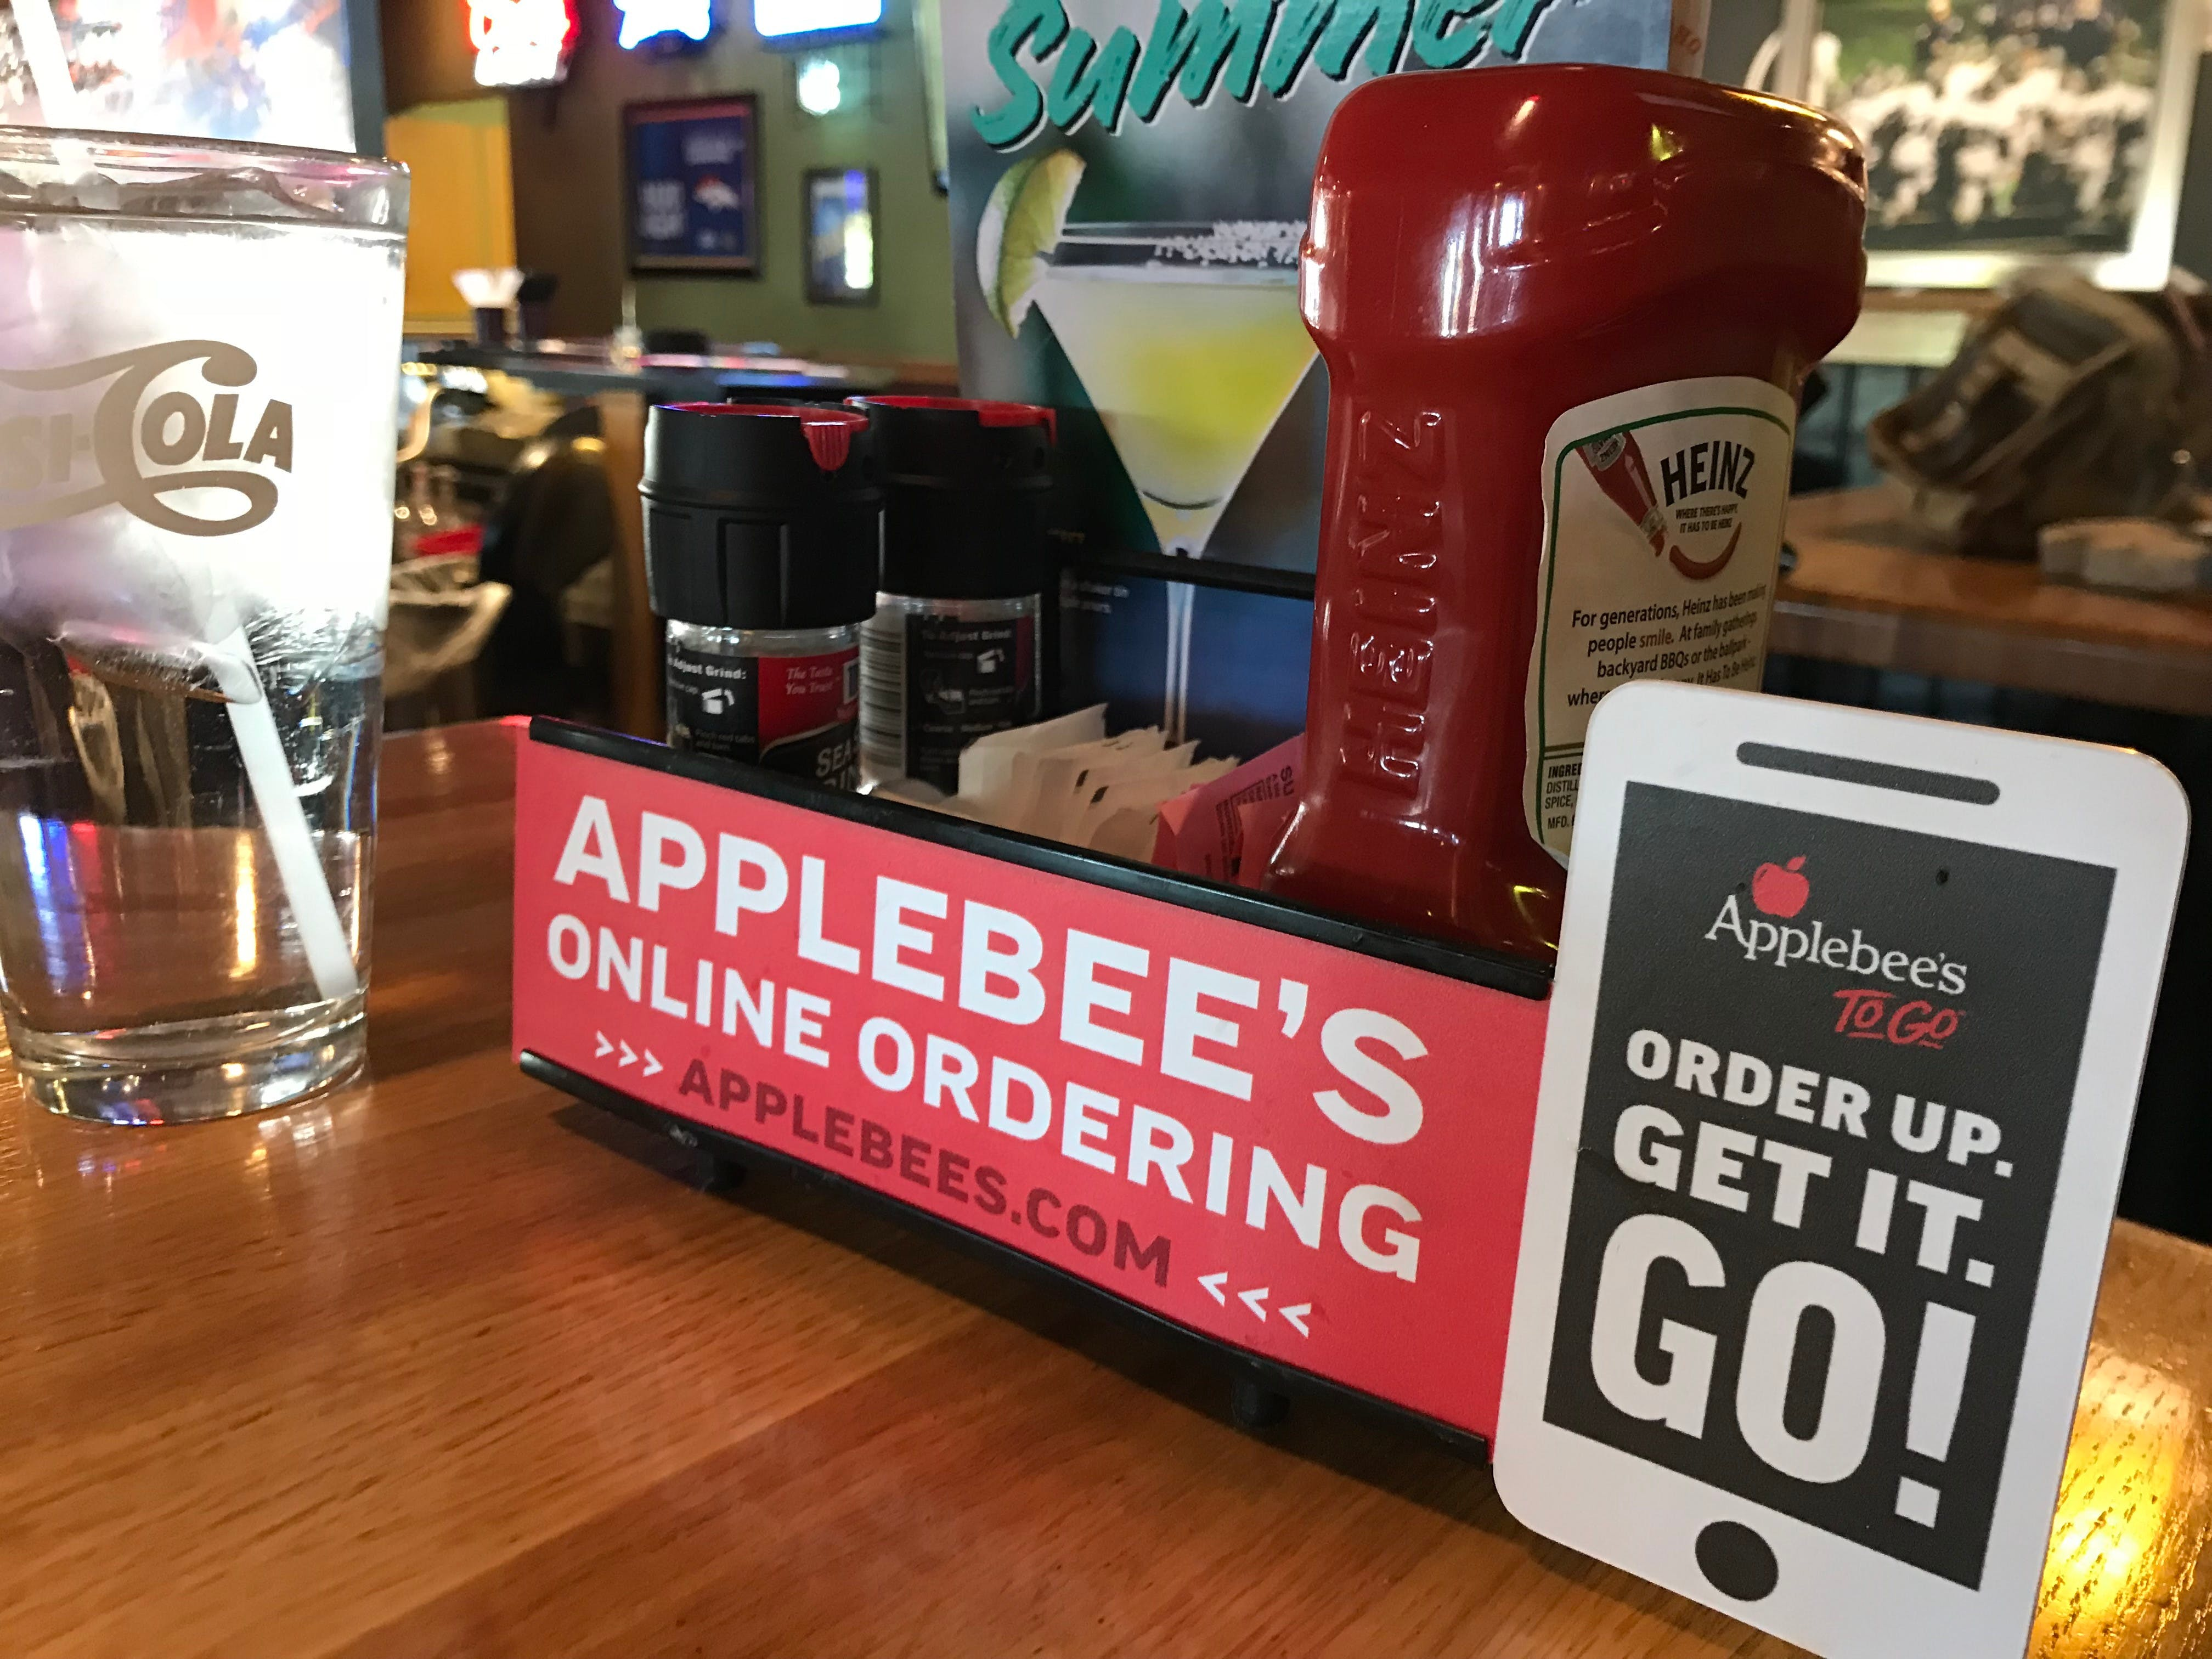 15 Ways To Save At Applebee S That Might Seem Too Good To Be True